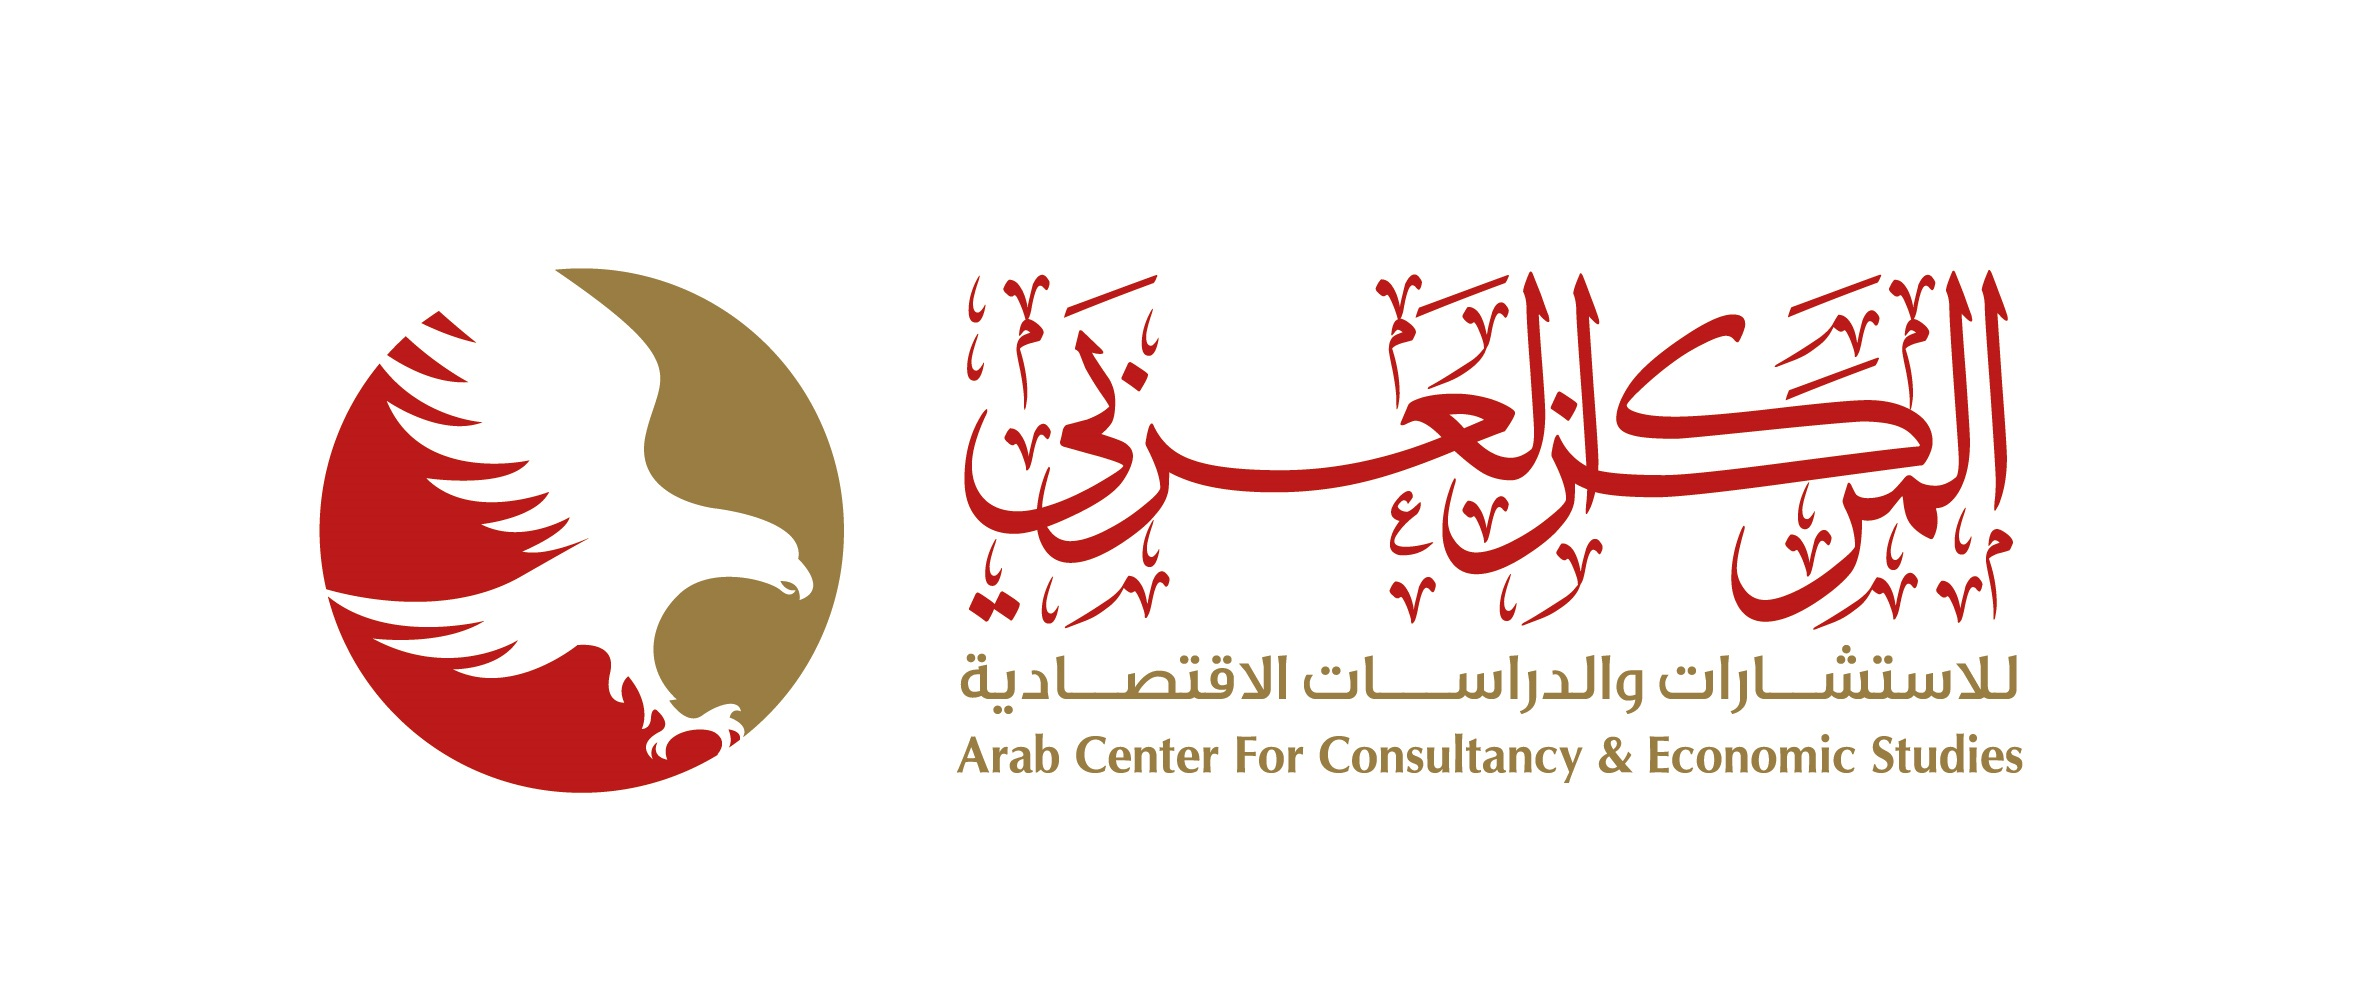 Arab Center For Consultancy & Economic Studies